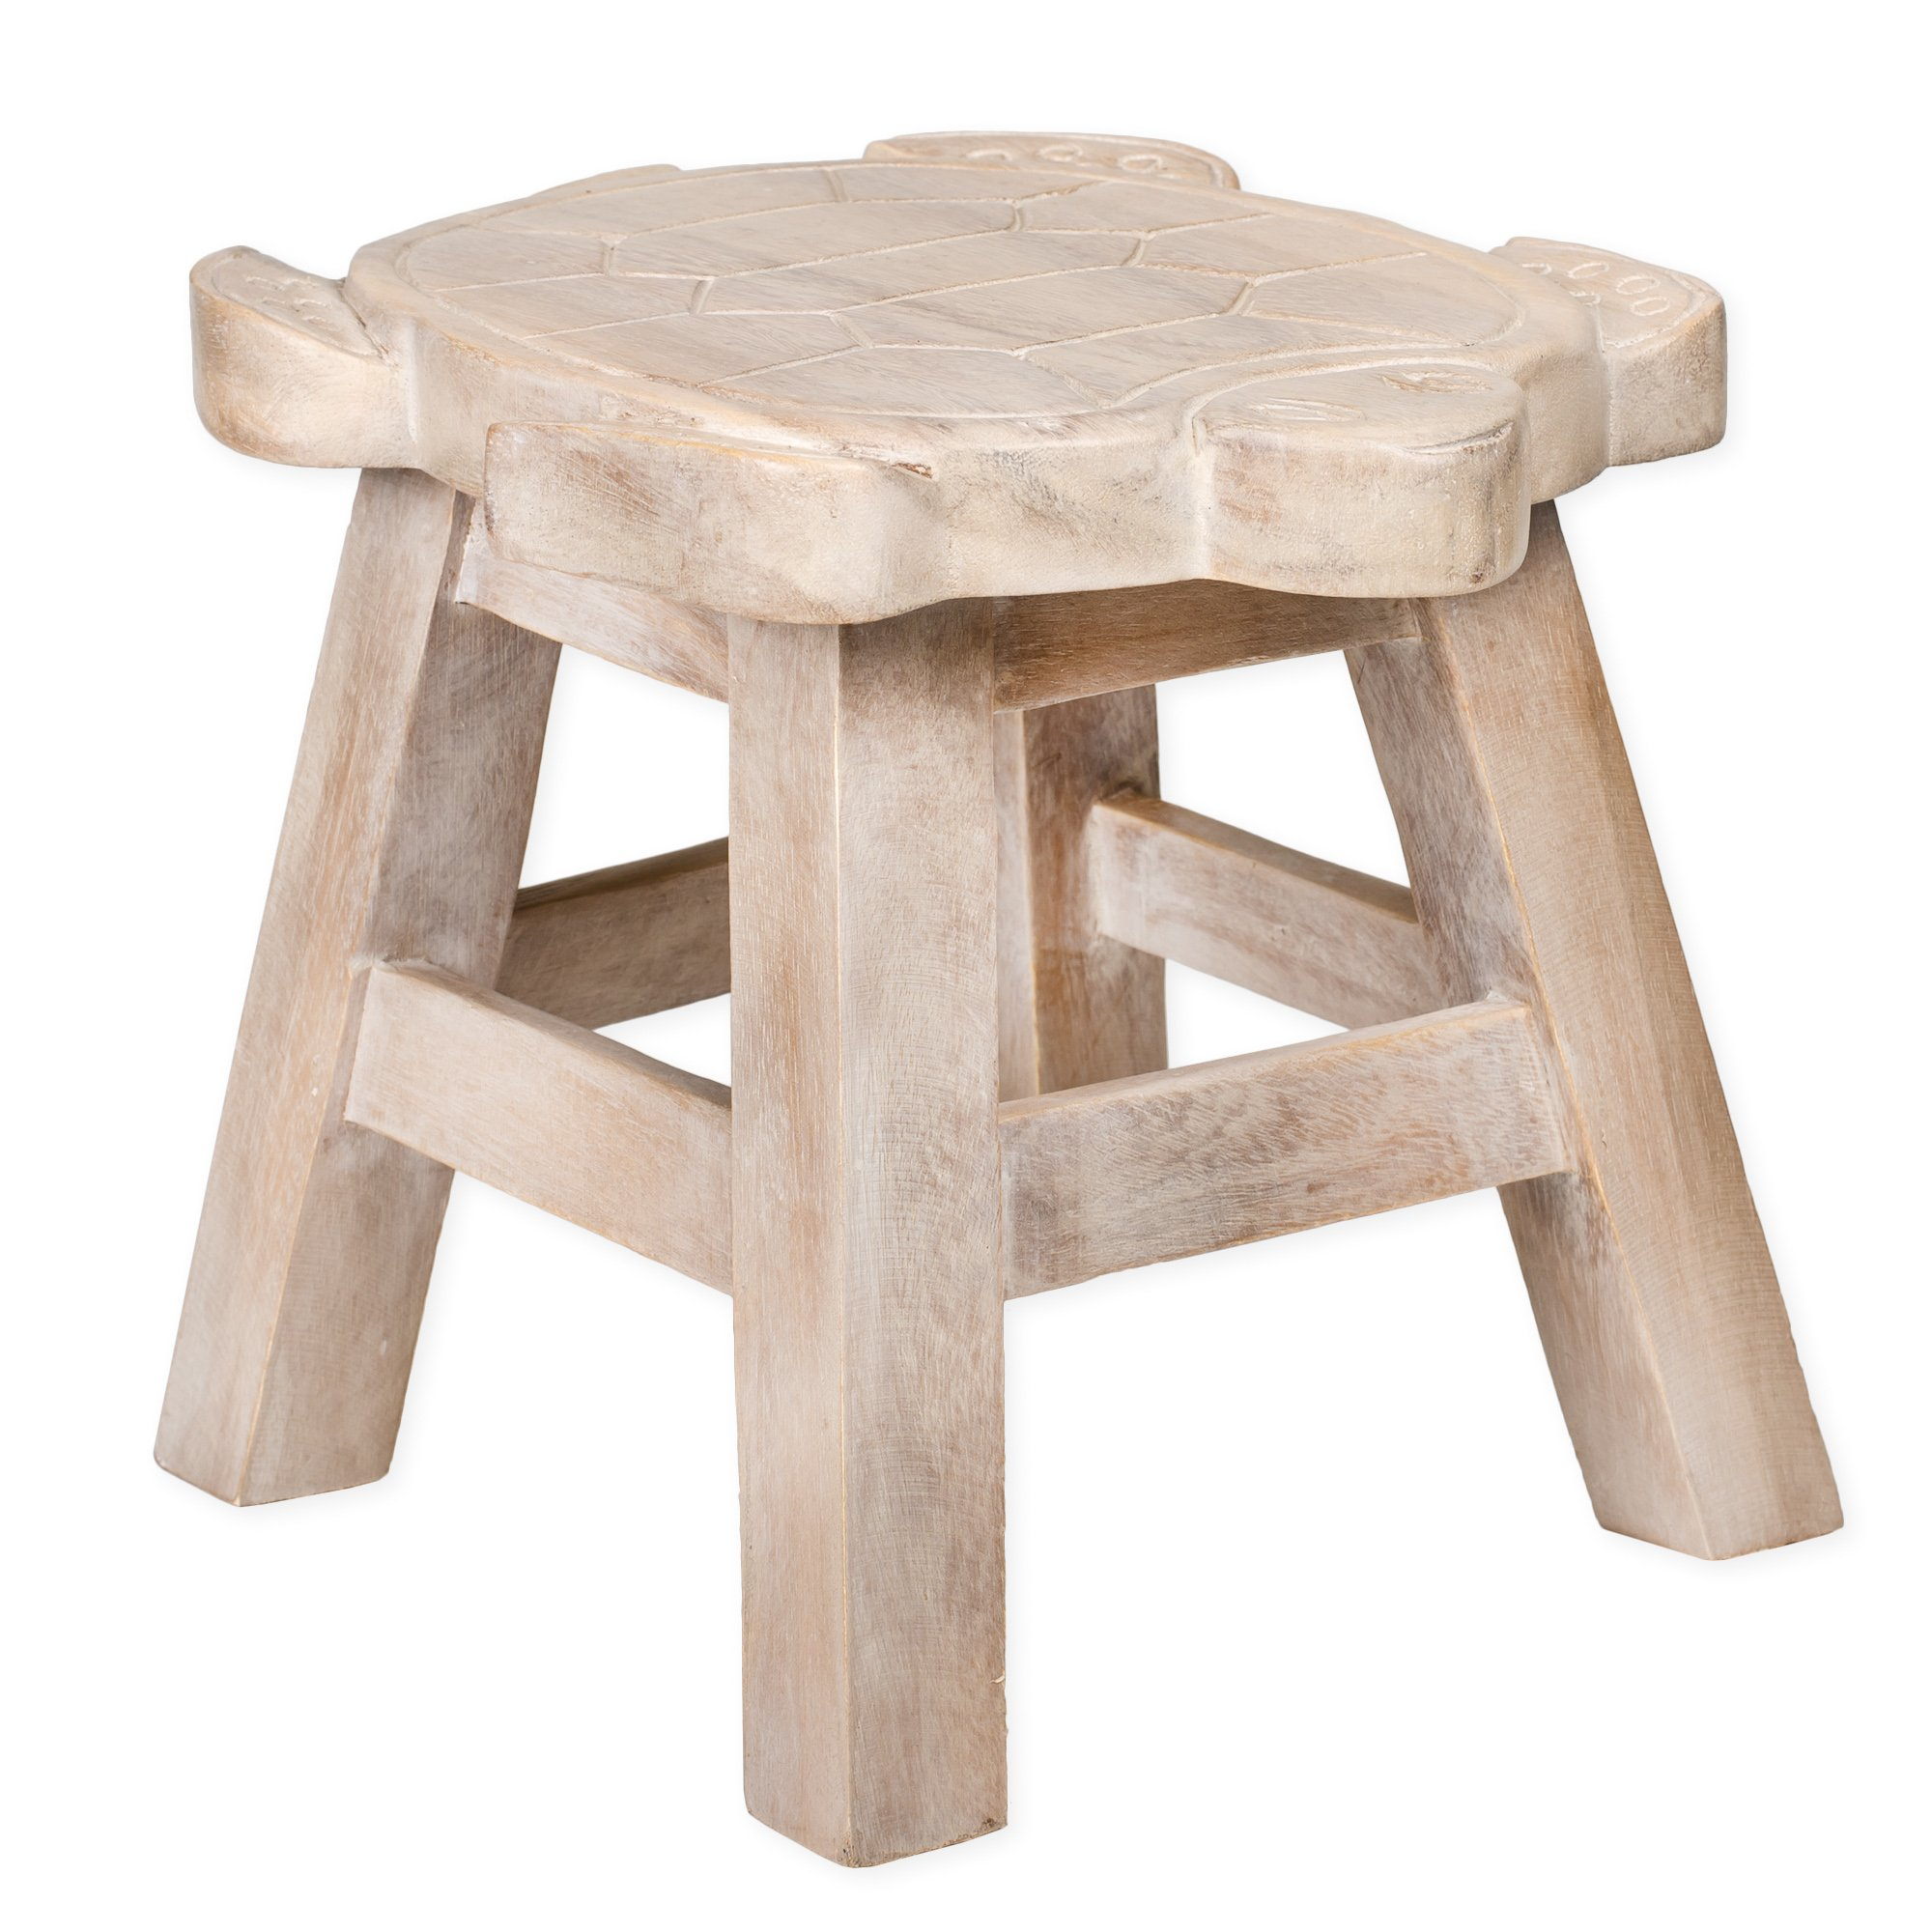 Turtle Whitewash Design Hand Carved Acacia Hardwood Decorative Short Stool